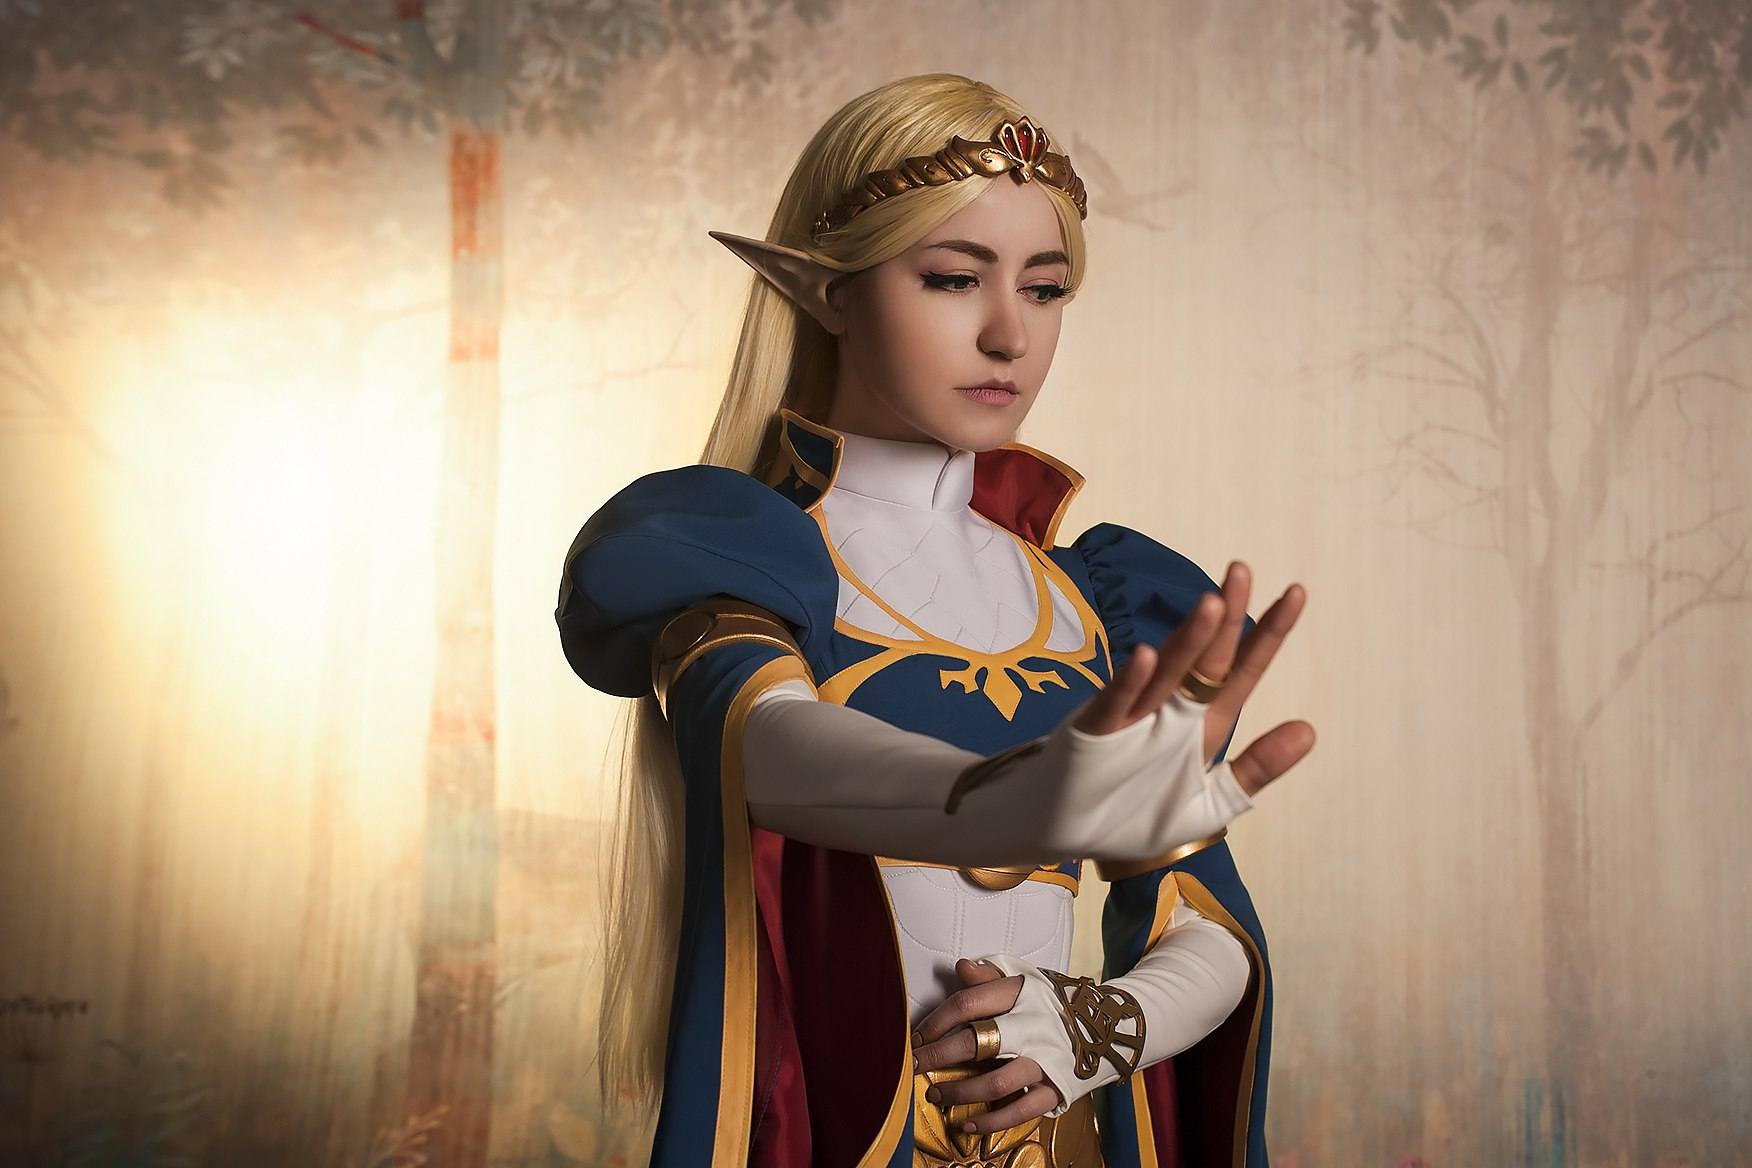 breath-of-the-wild-zelda-nataliya-10